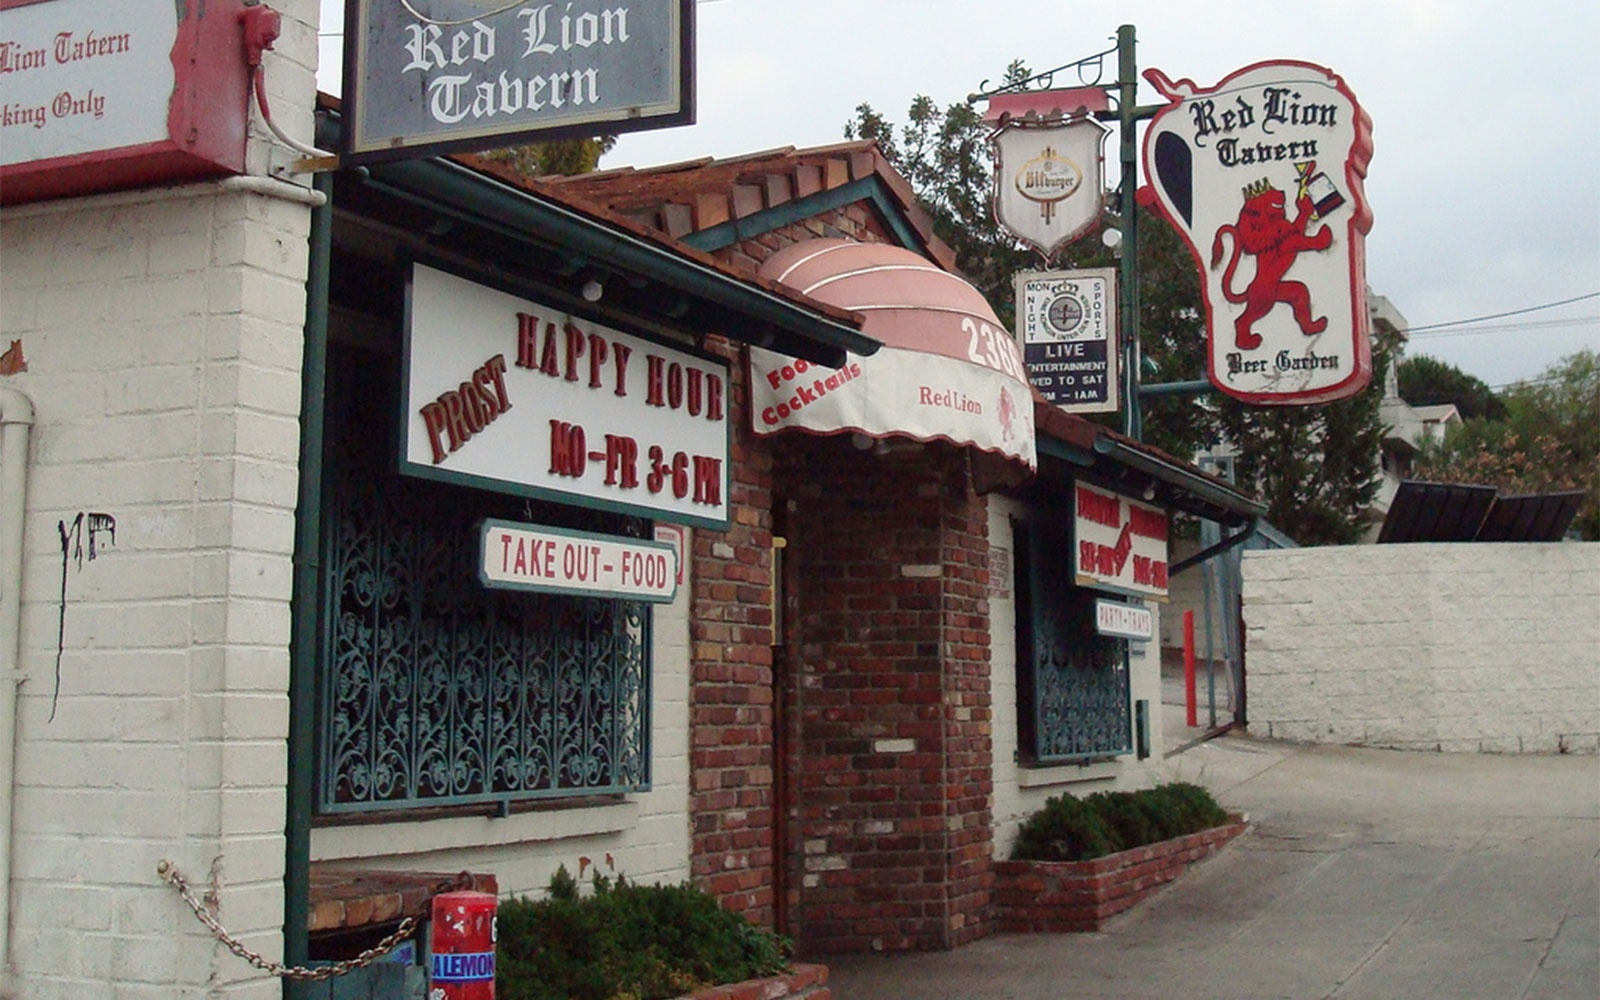 Red Lion Tavern,Los Angeles